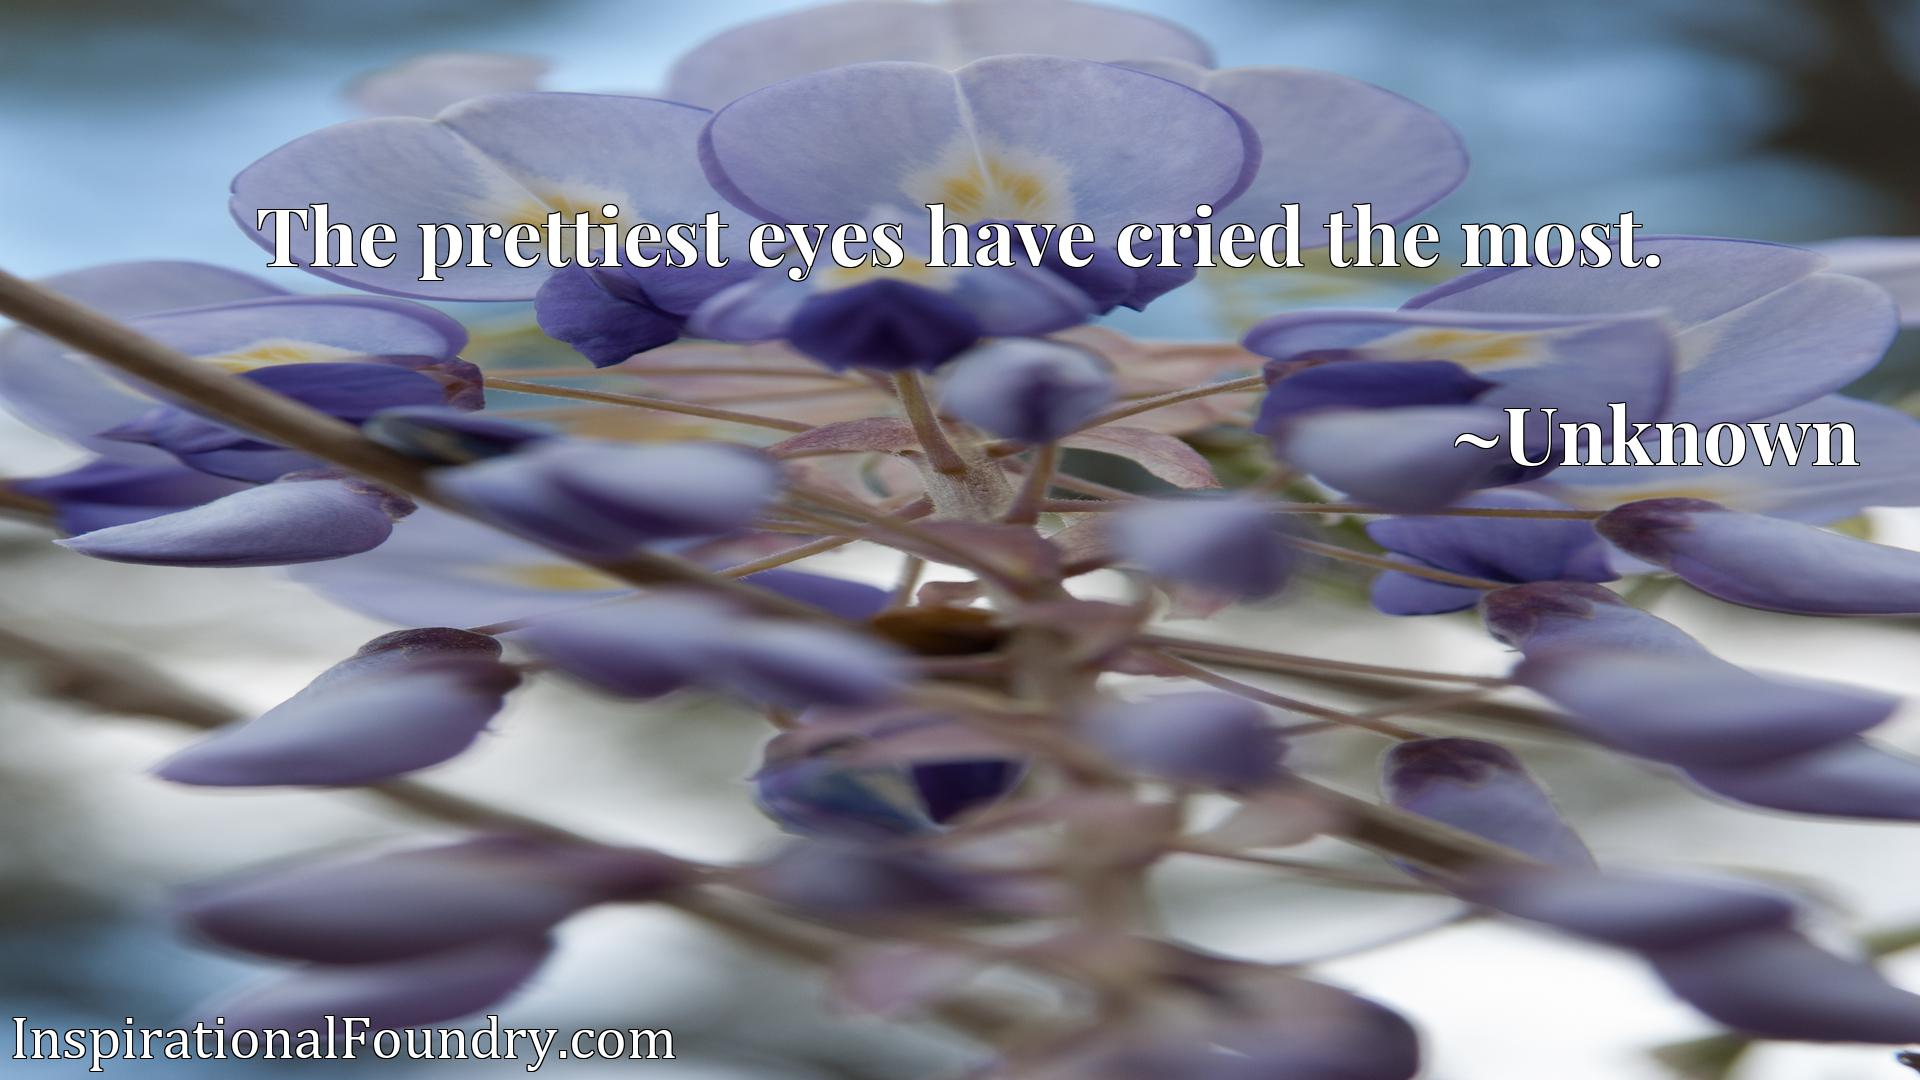 The prettiest eyes have cried the most.